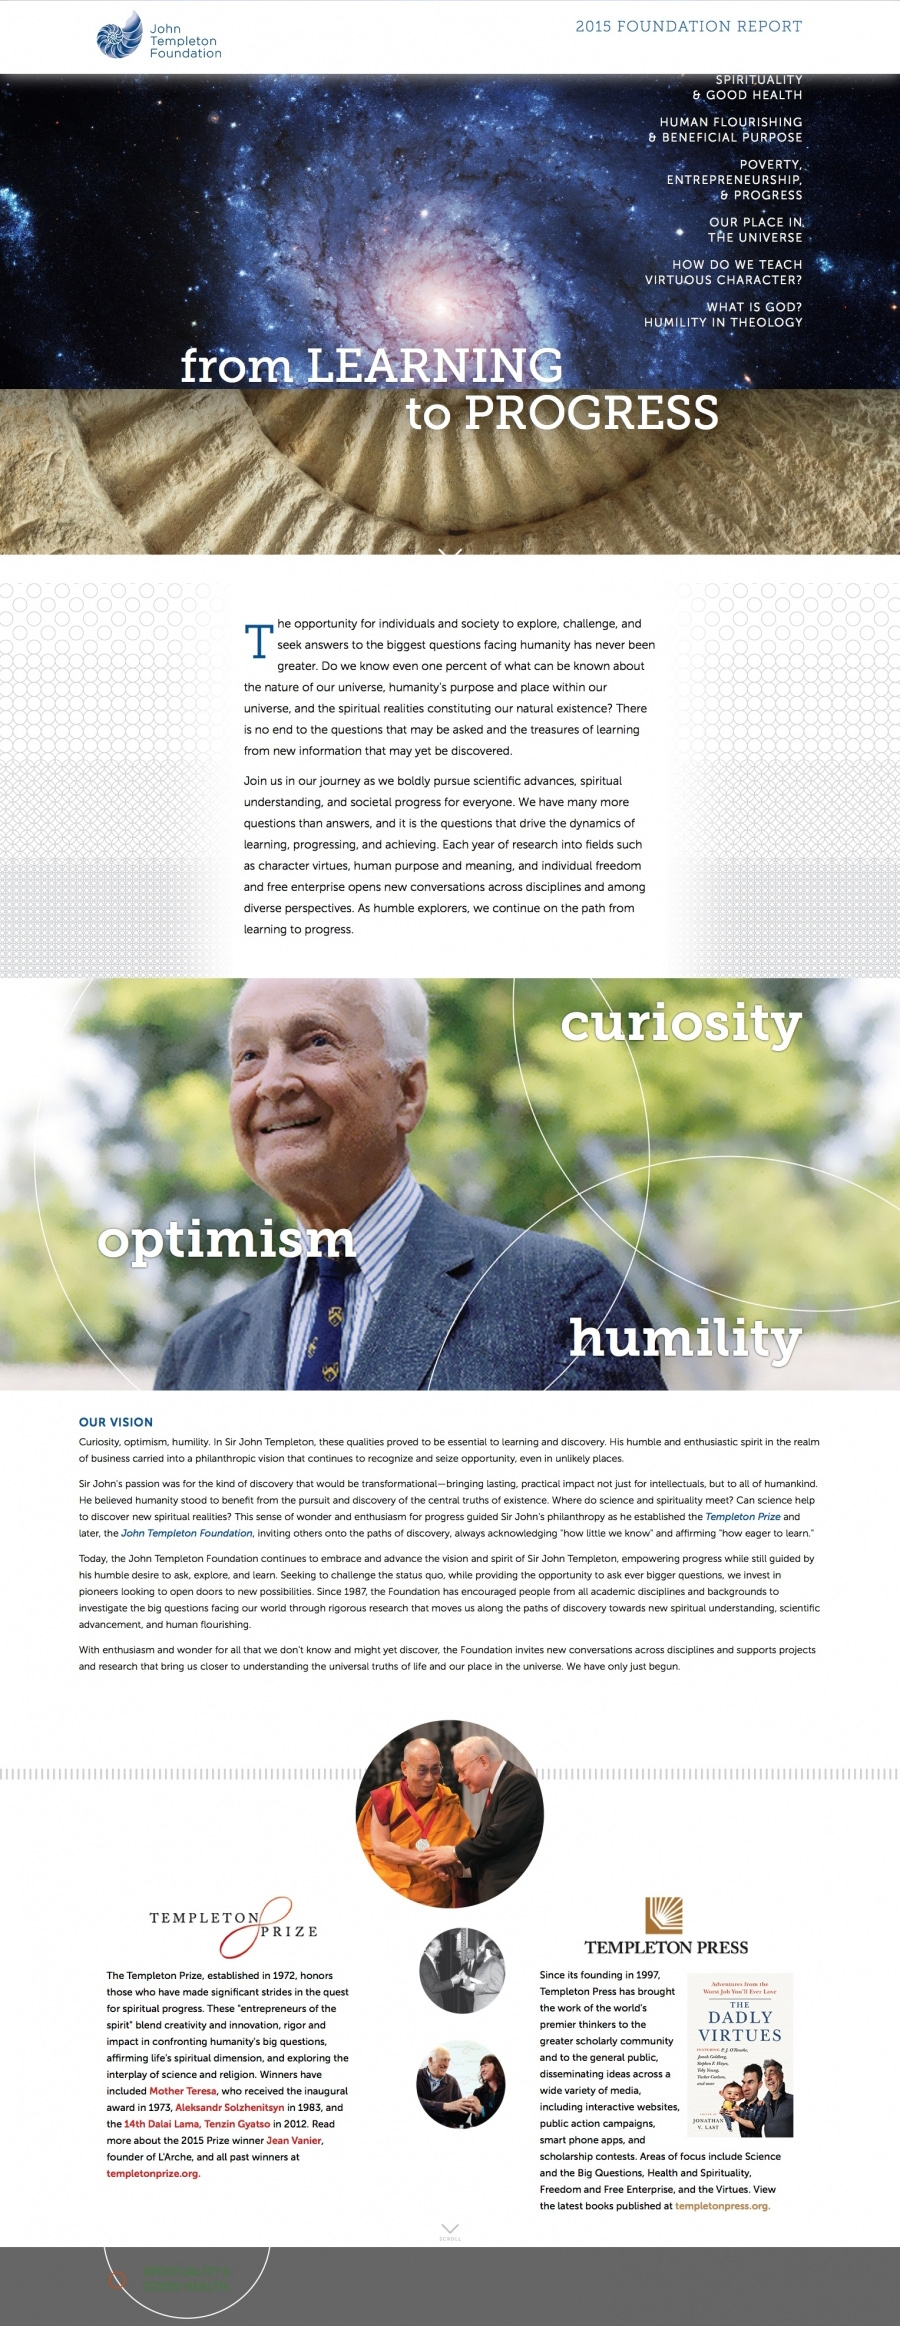 Templeton Foundation Digital Annual Report, Continuous Scrolling Website